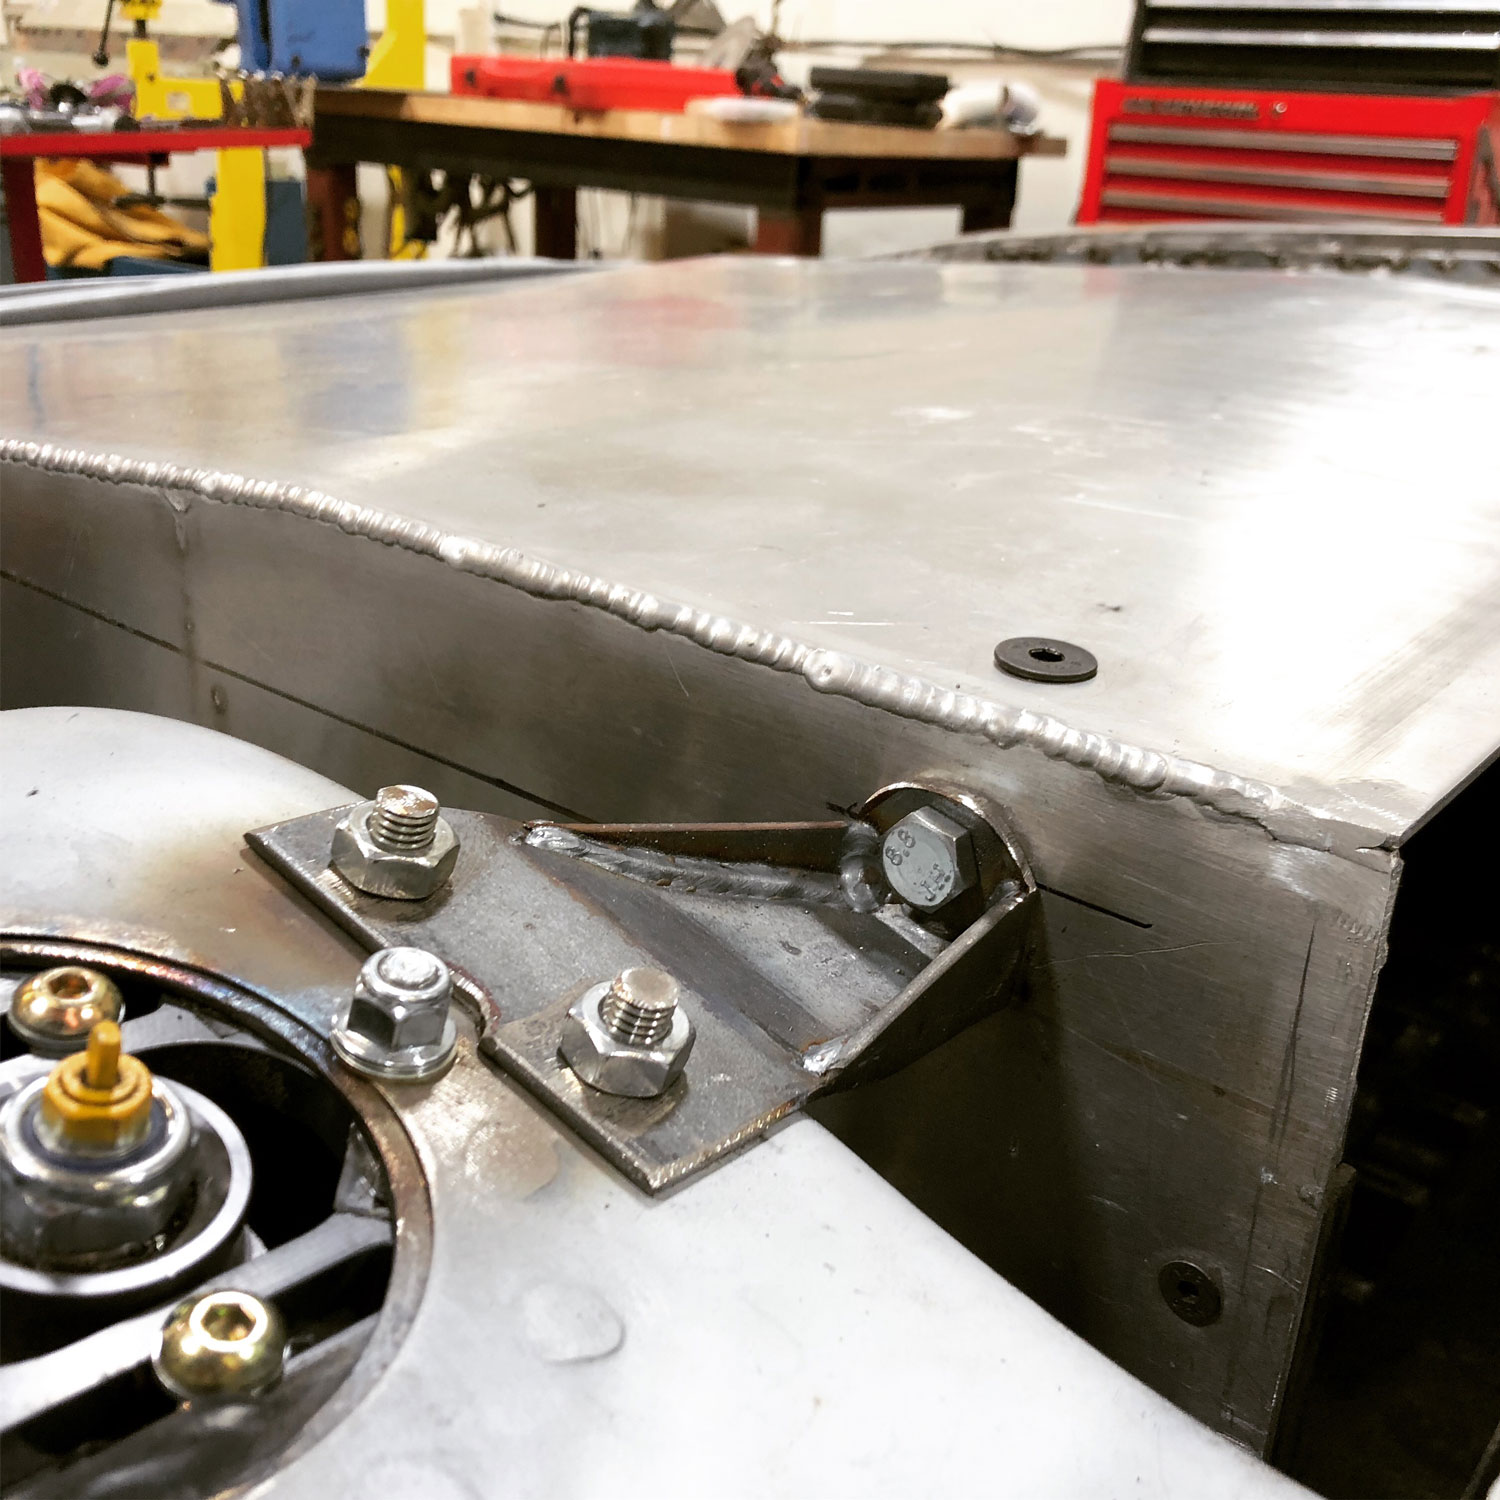 Each corner of the box has brackets to secure it to the car. The corners of the box are steel reinforced on the inside for this purpose and also for living the box.